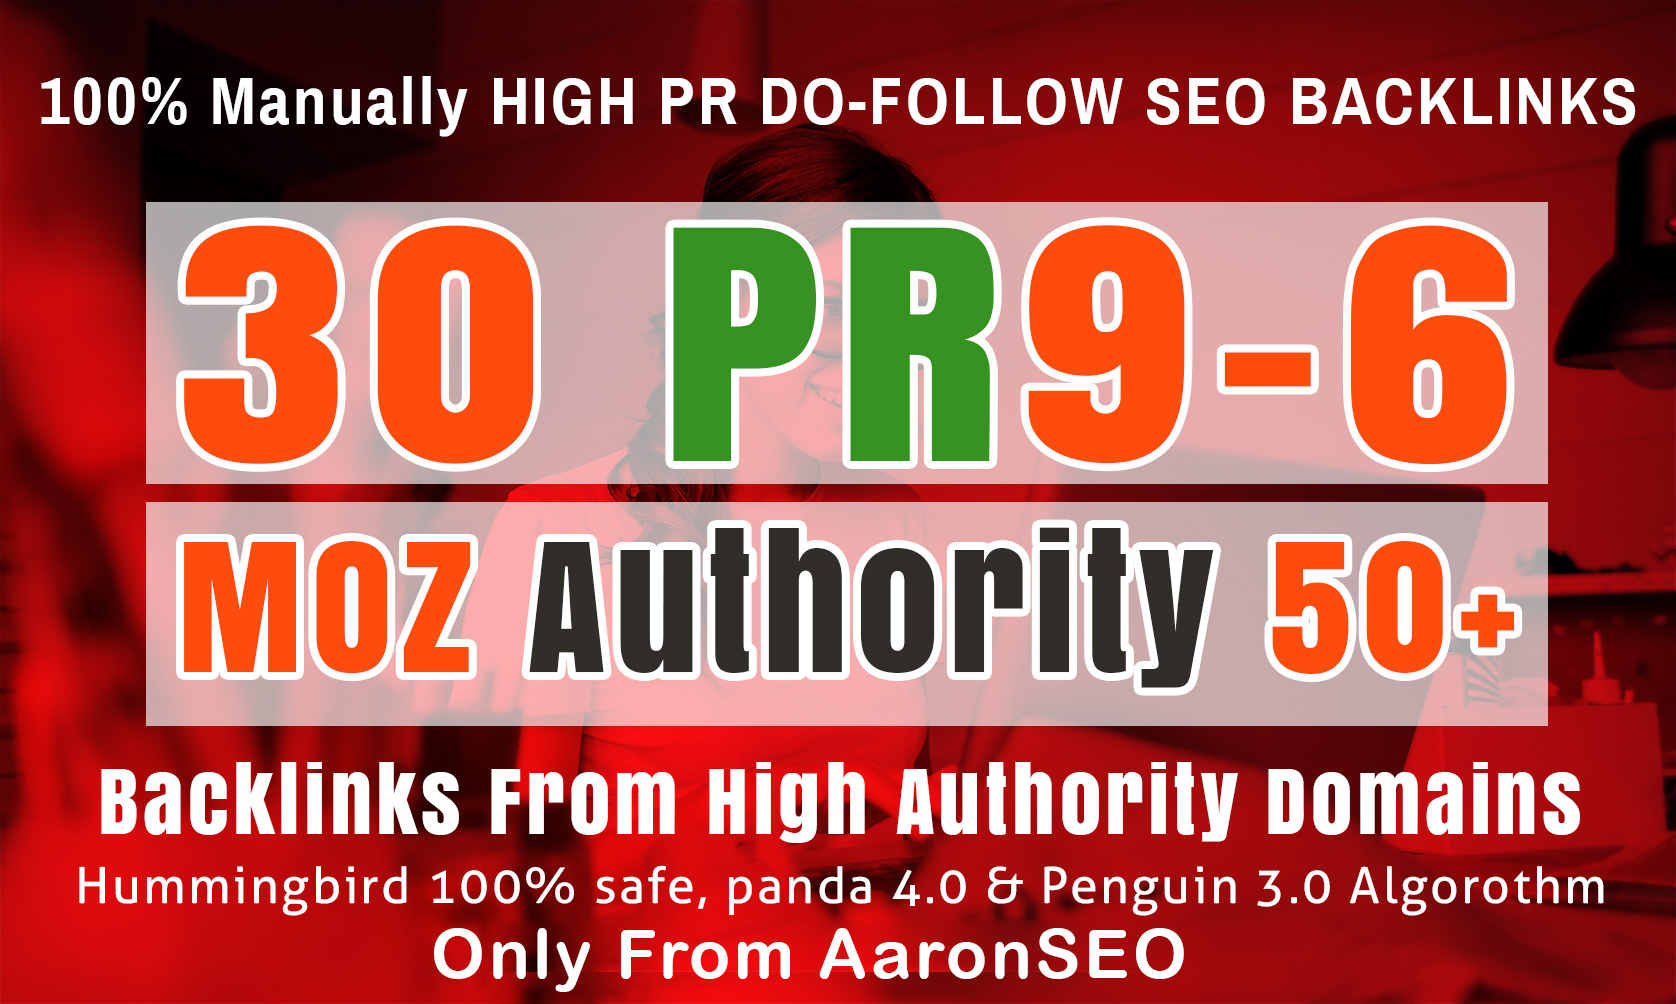 I WILL BUILD HIGH DOMAIN AUTHORITY AND HIGH PR DO-FOLLOW SEO BACKLINKS TO YOUR WEBSITE